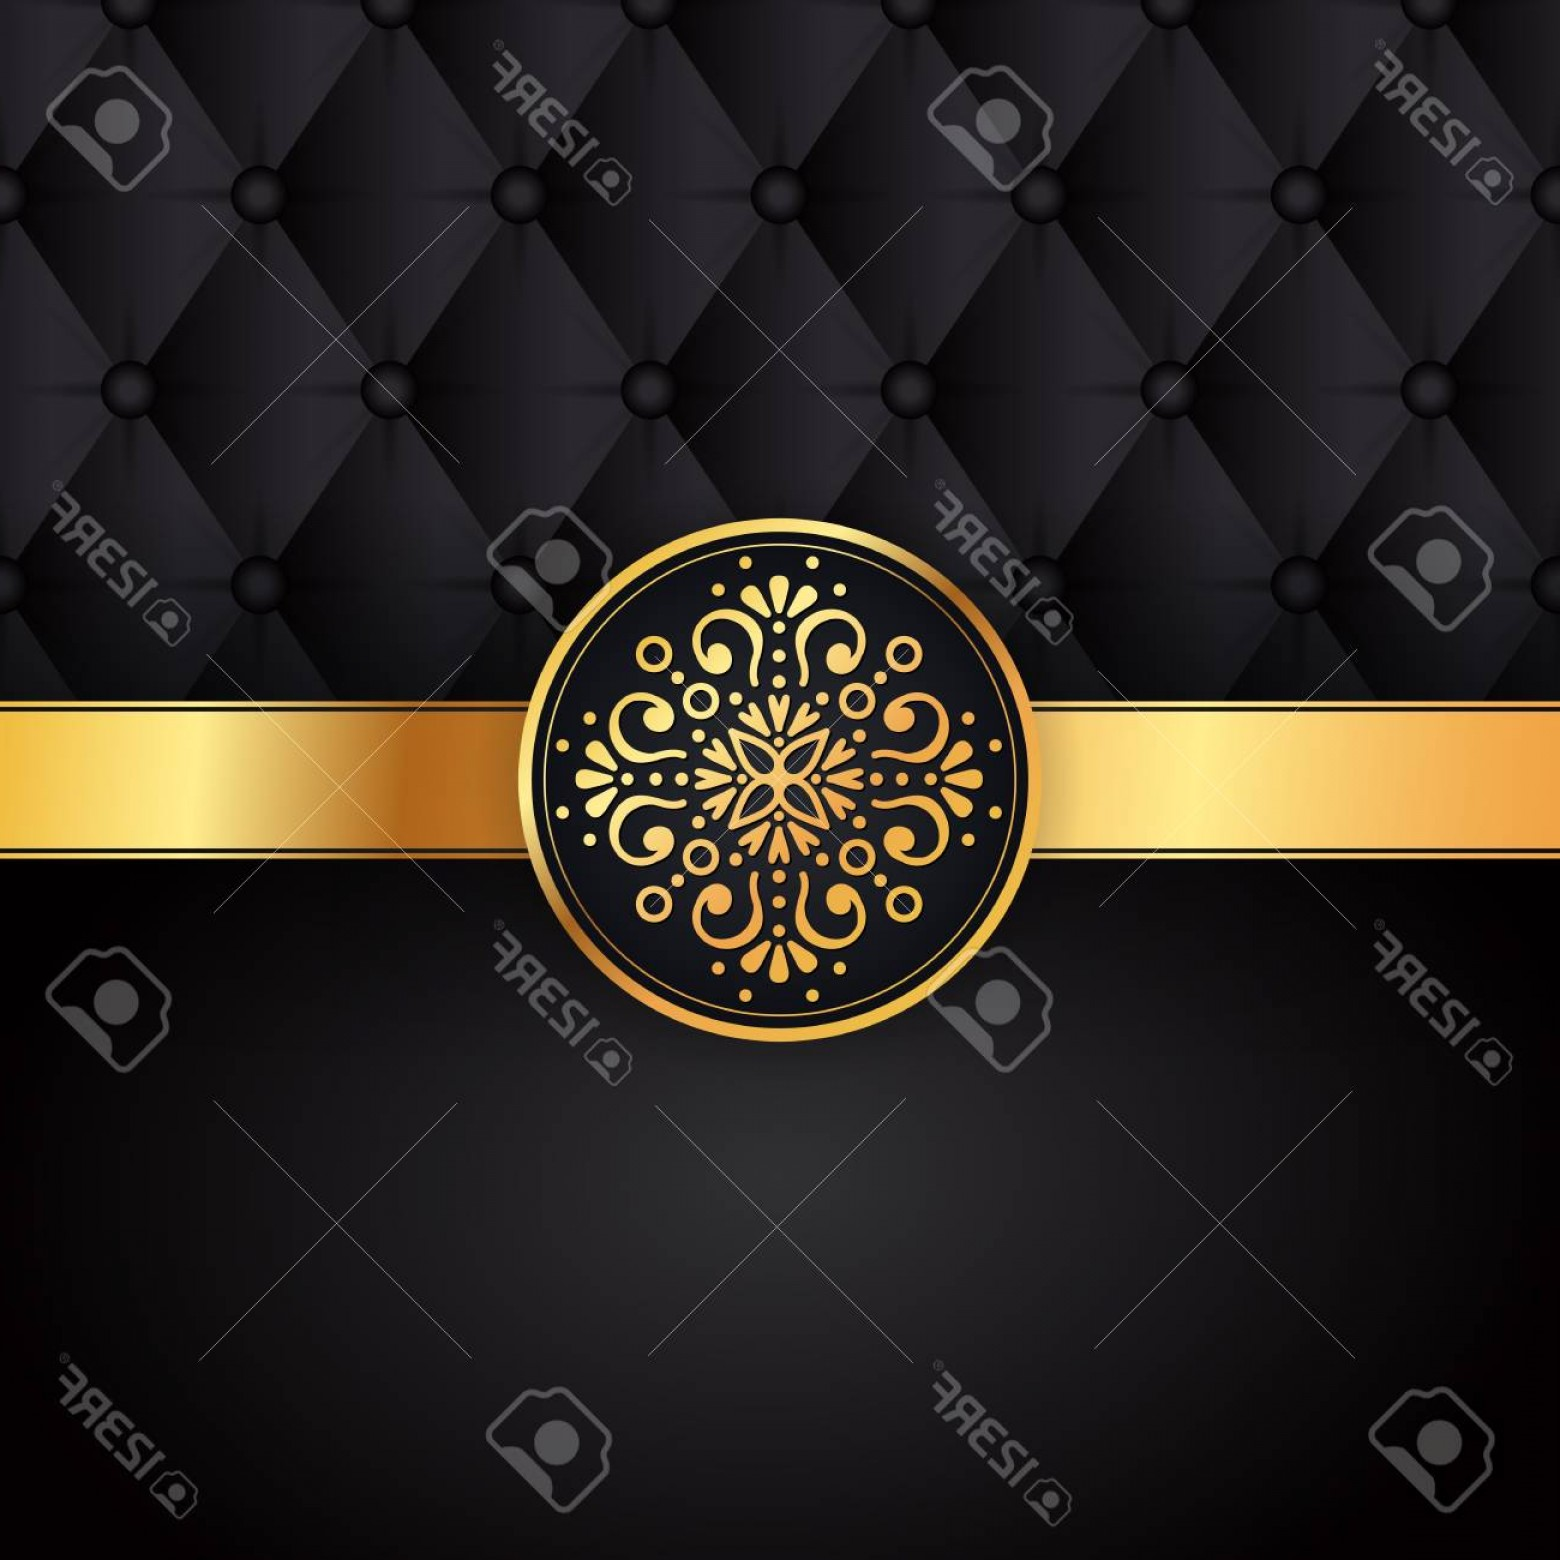 Christian Vector Sun: Photostock Vector Gold Black Background Design Vector Sun Indian Pattern Eye Peacock Feather Frame Oriental Mandala Sw